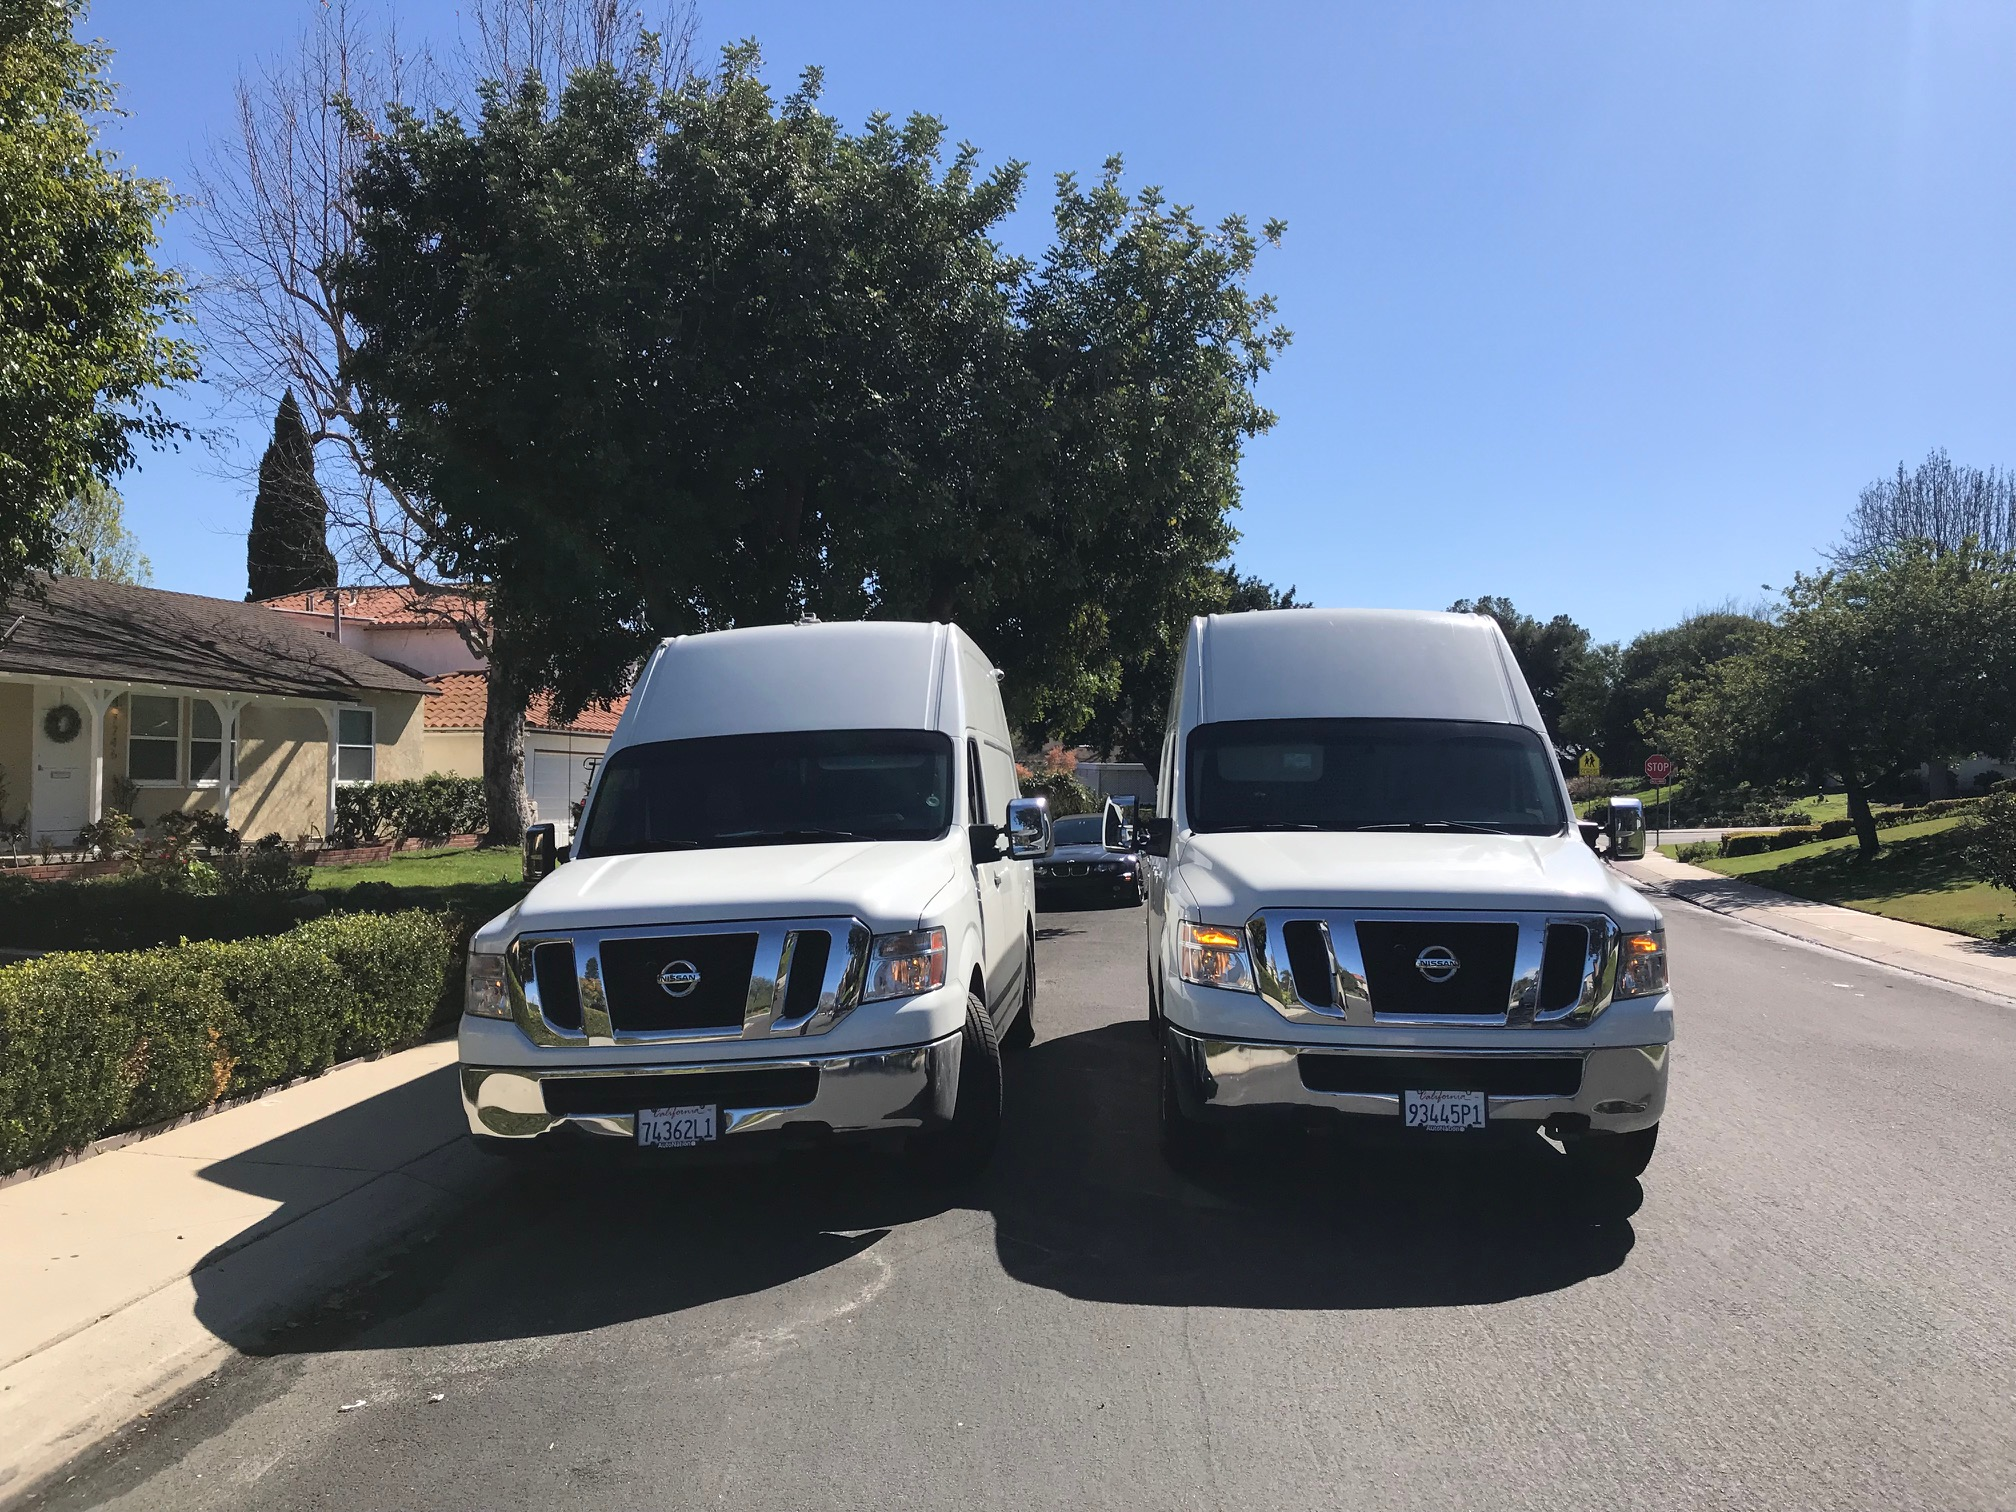 Andy's Locksmith Work Trucks